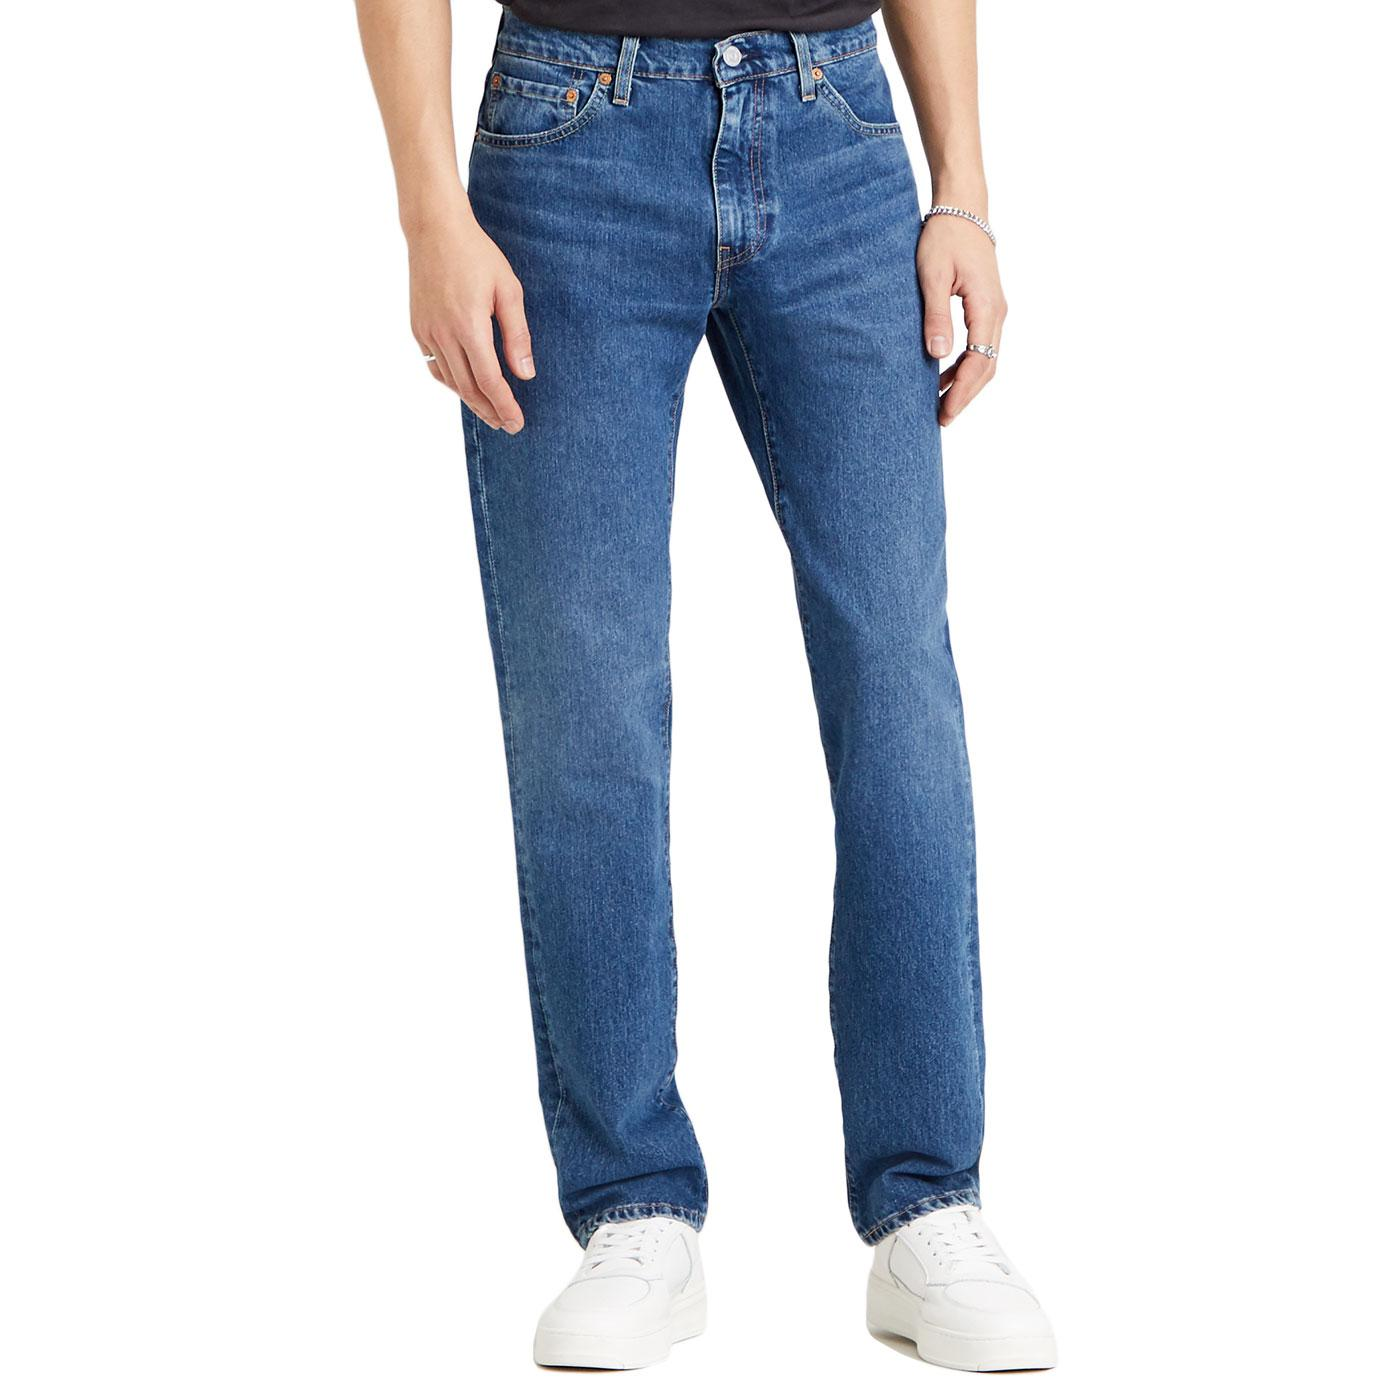 LEVI'S 511 Slim Stretch Jeans (Manilla Sea Adapt)